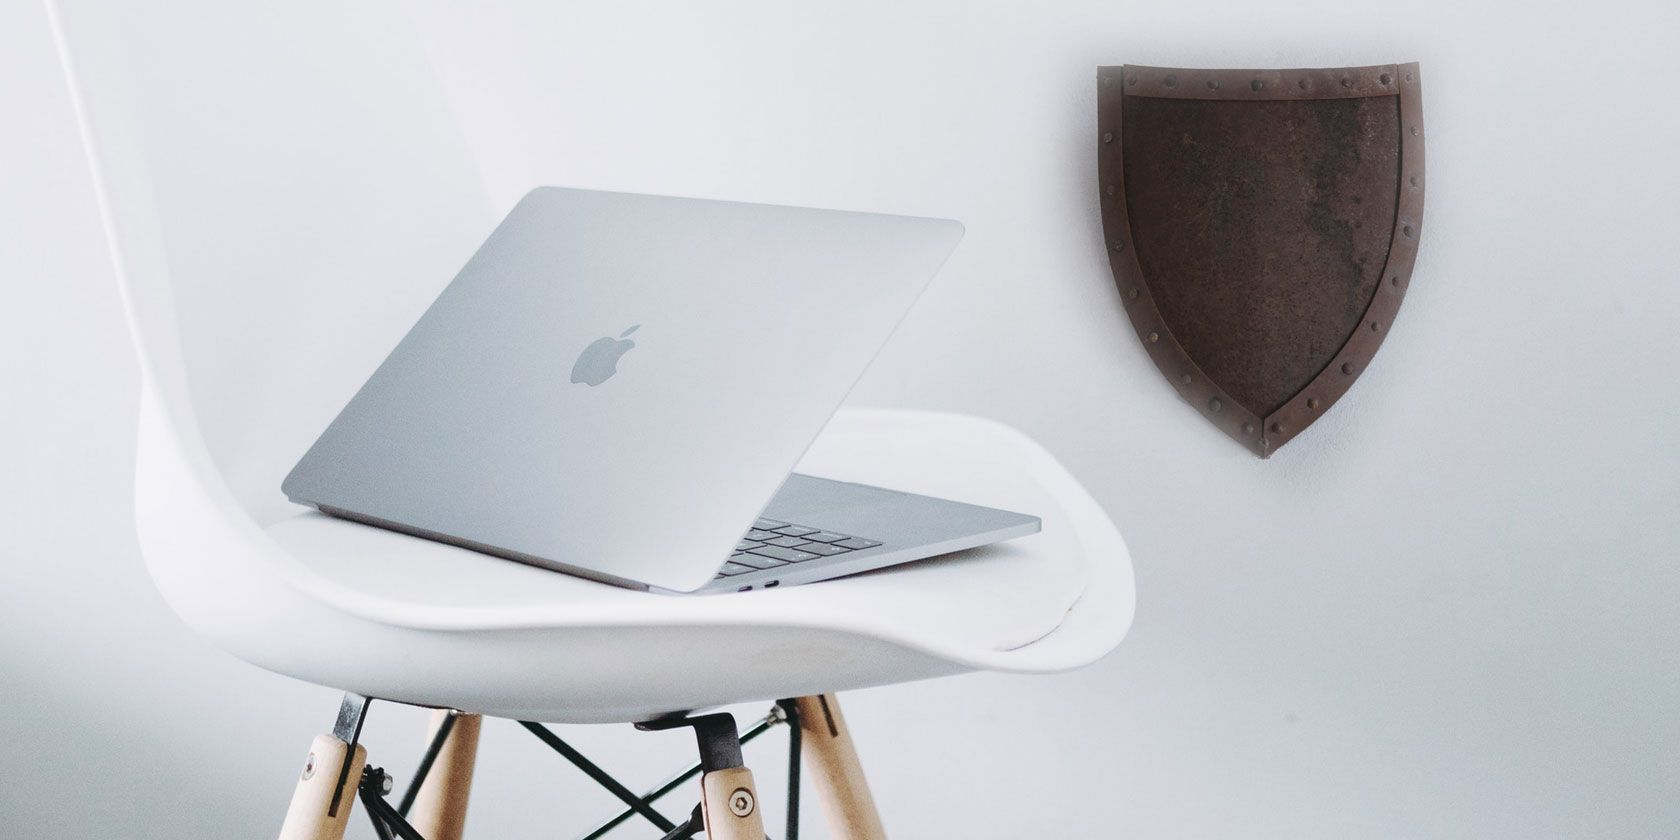 How to Set Up a VPN on Your Mac